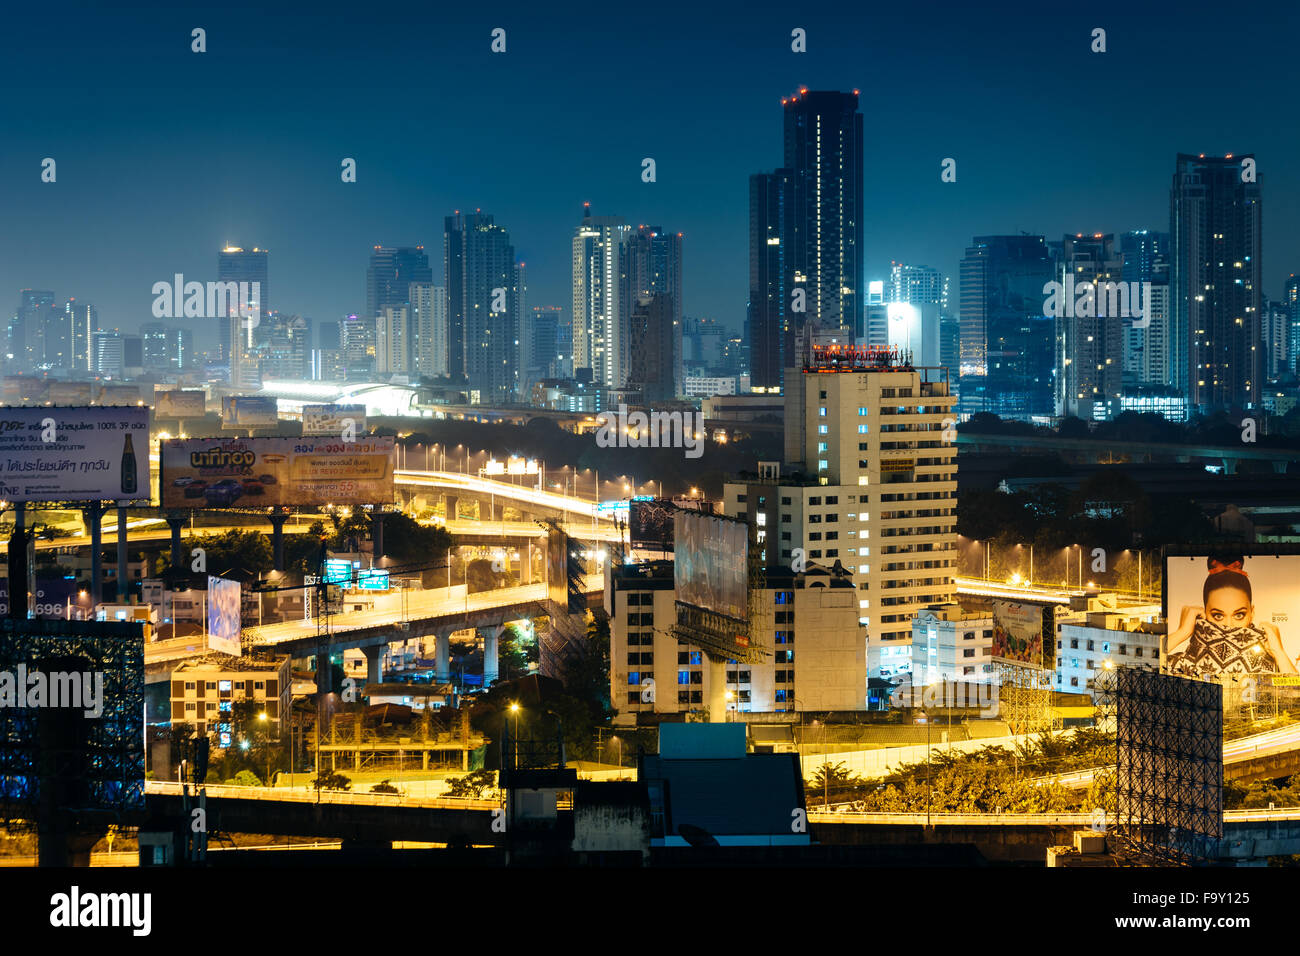 View of skyscrapers at night, in Bangkok, Thailand. - Stock Image